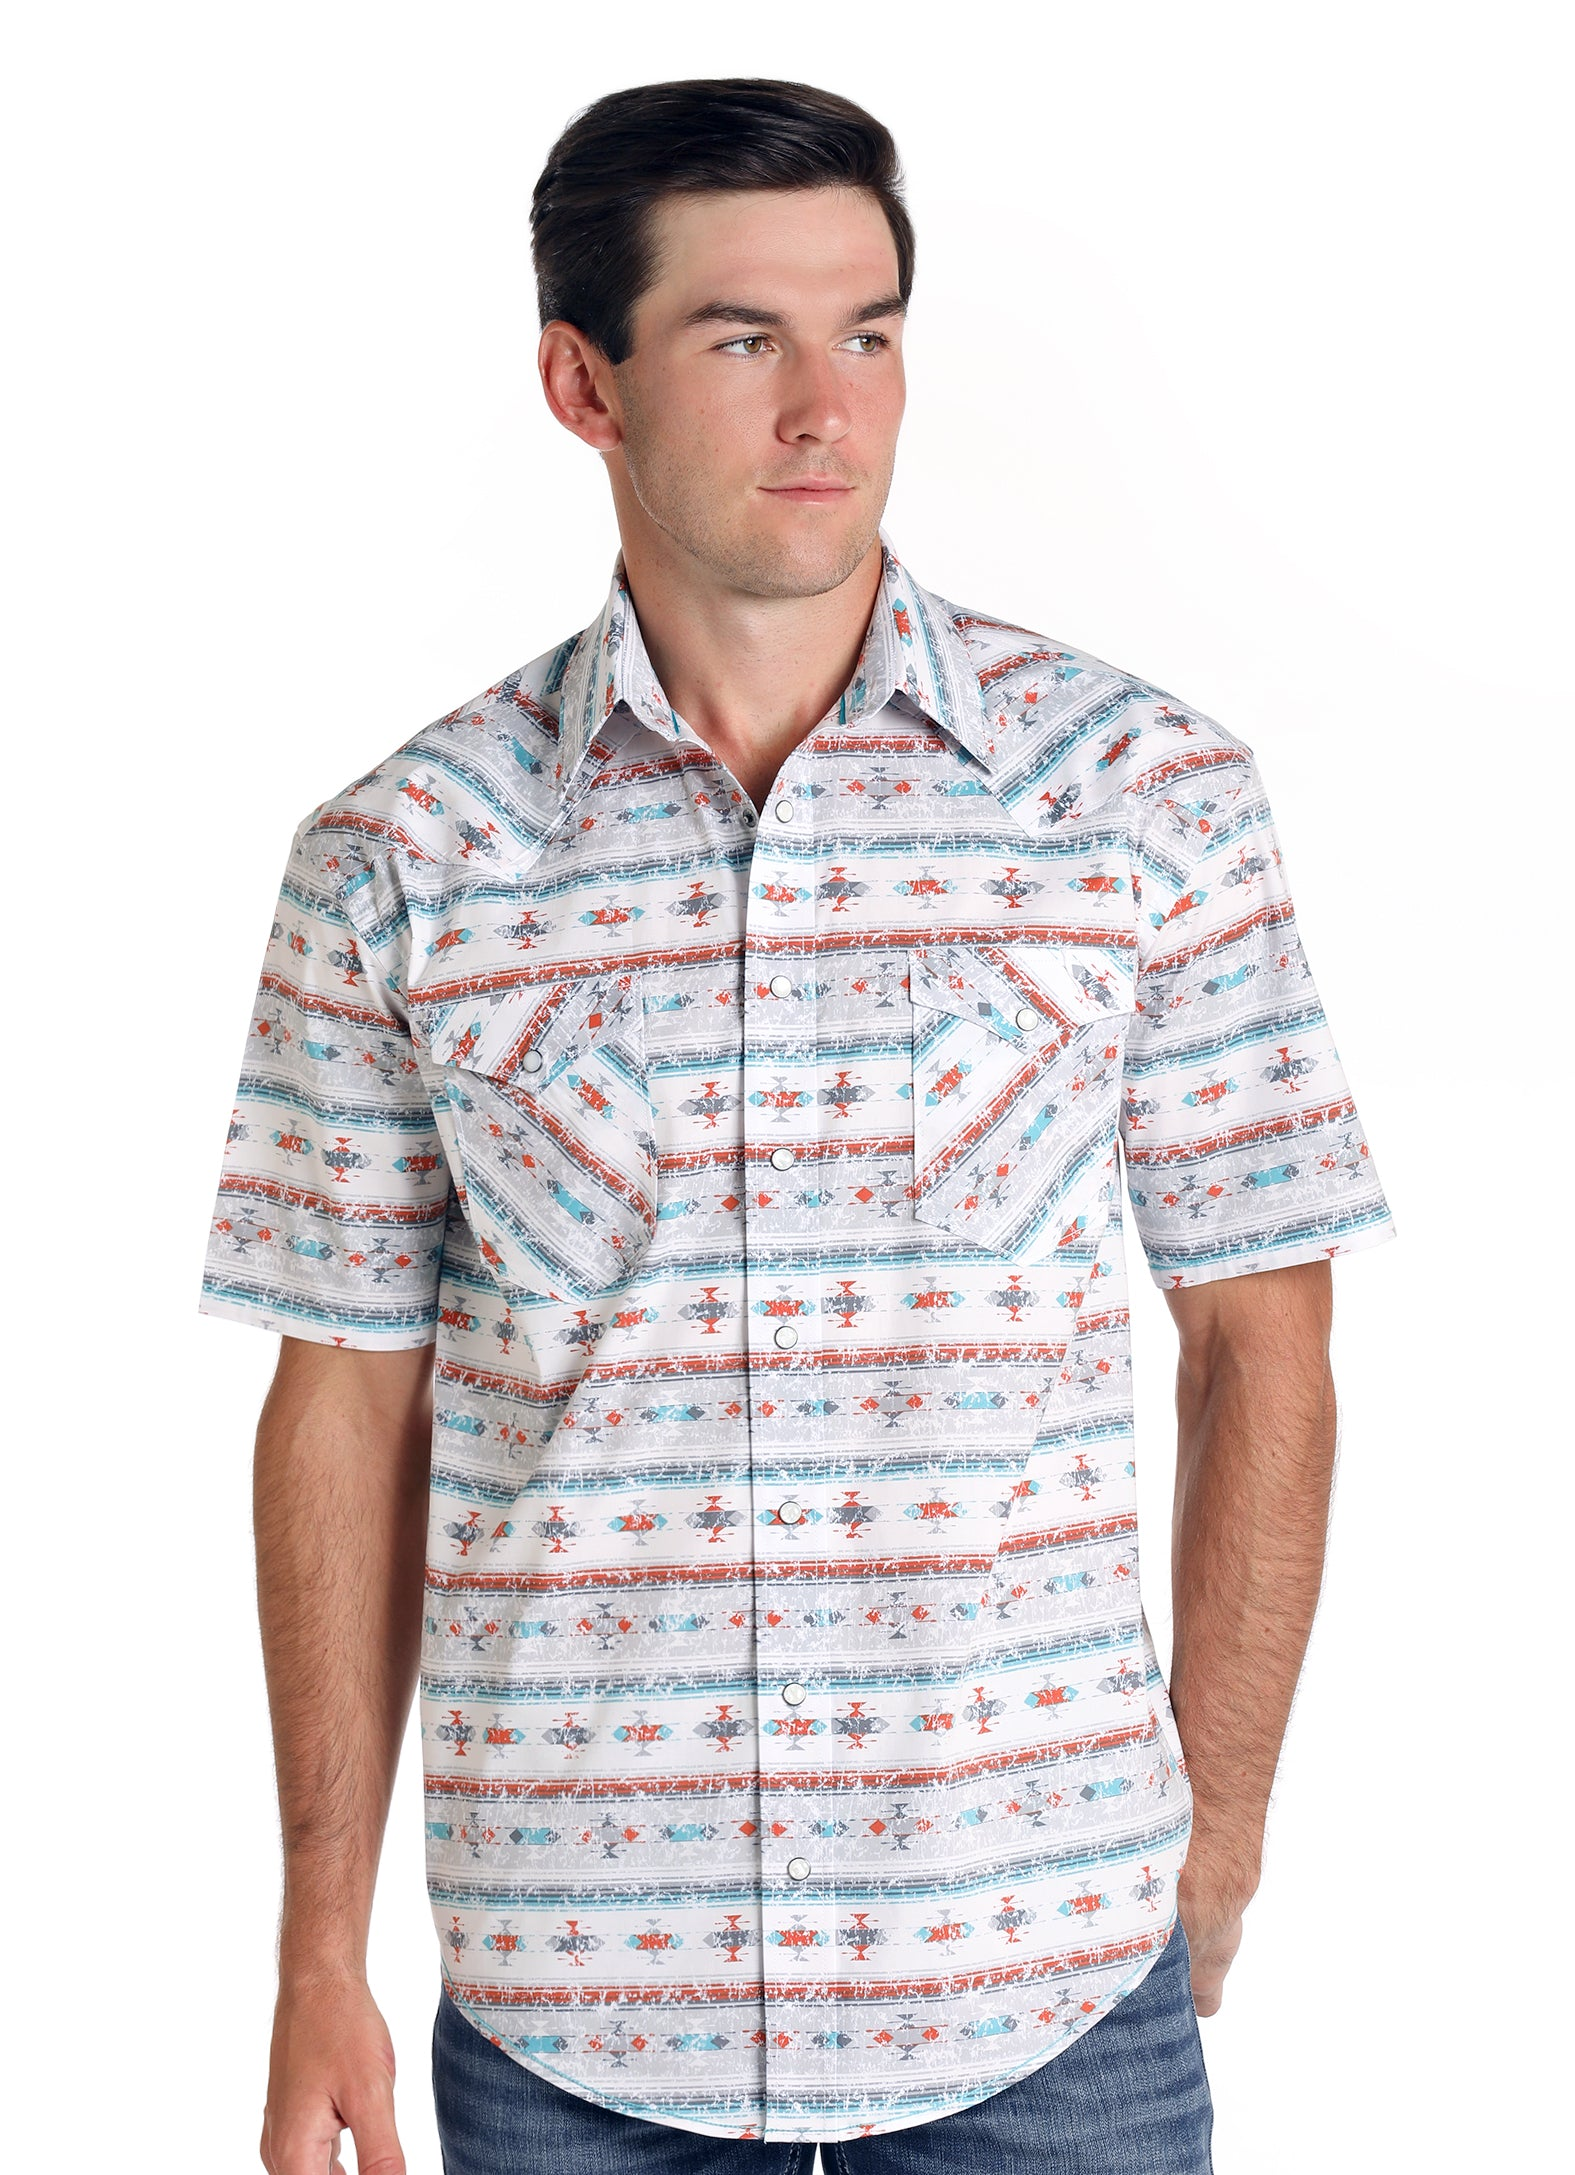 Panhandle Rough Stock Short Sleeve Del Lago Vintage Aztec Print